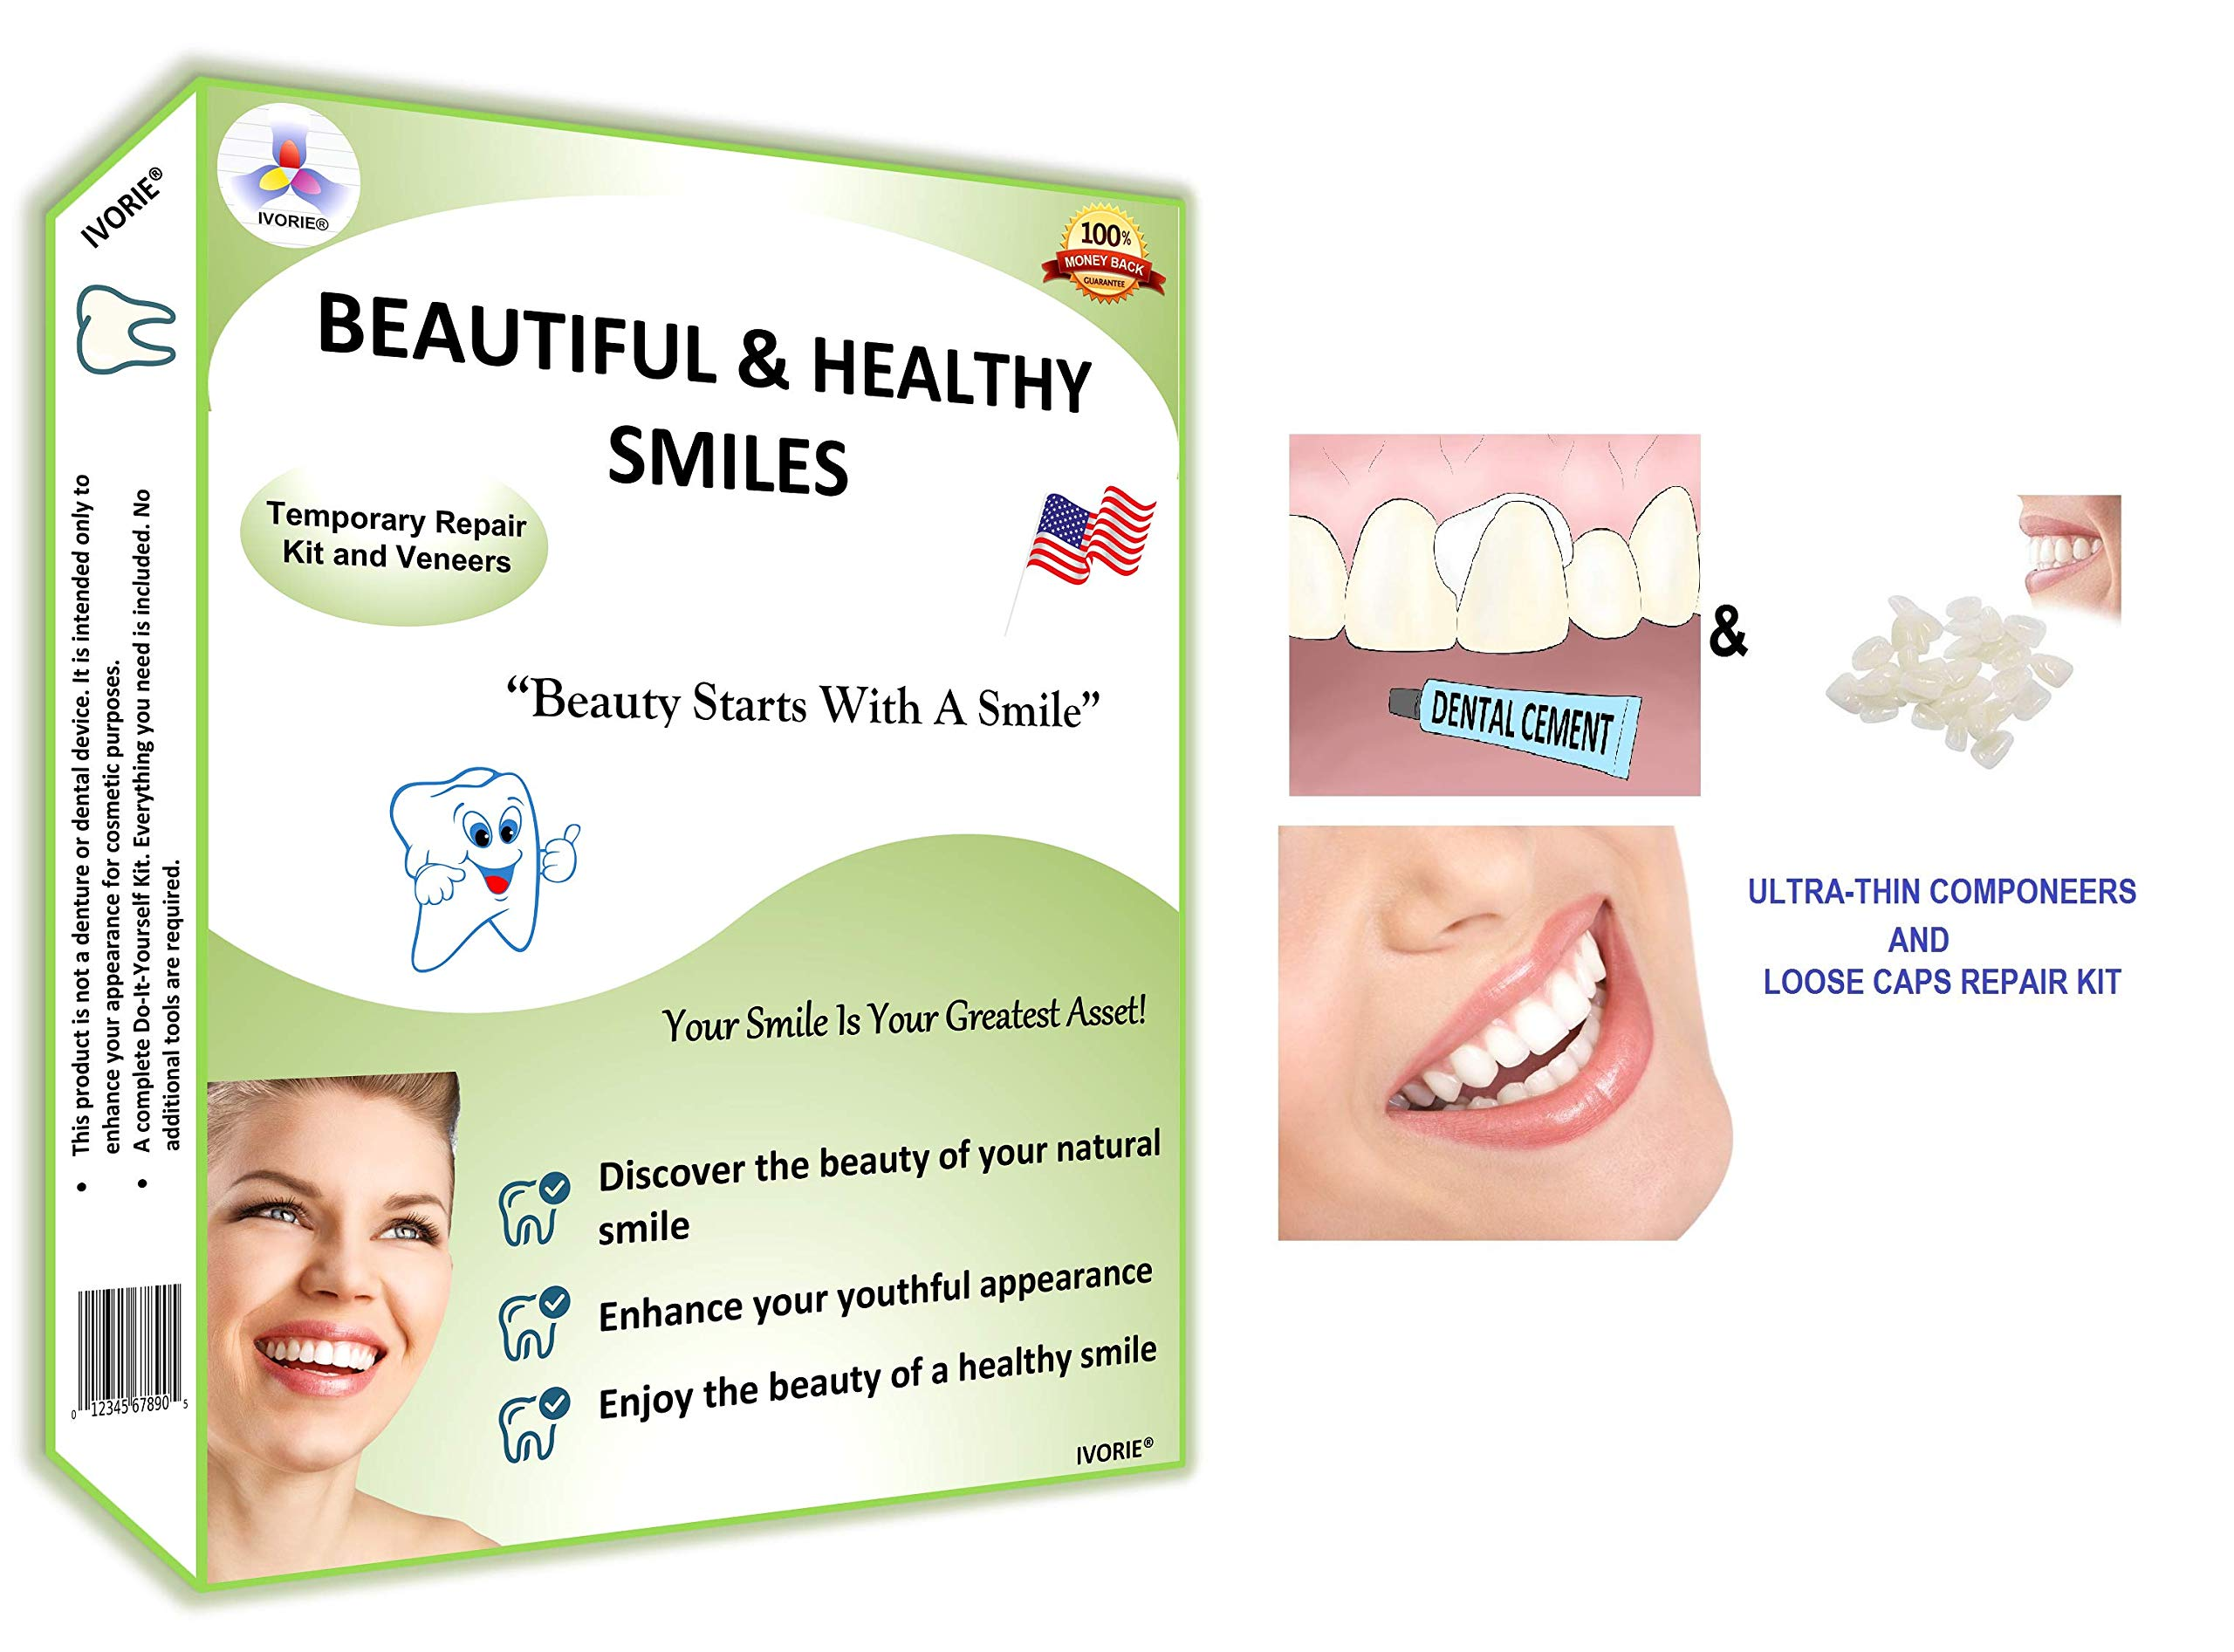 Dental Cosmetic Ultra-Thin Veneers and Dental Repair Loose Caps Home Use